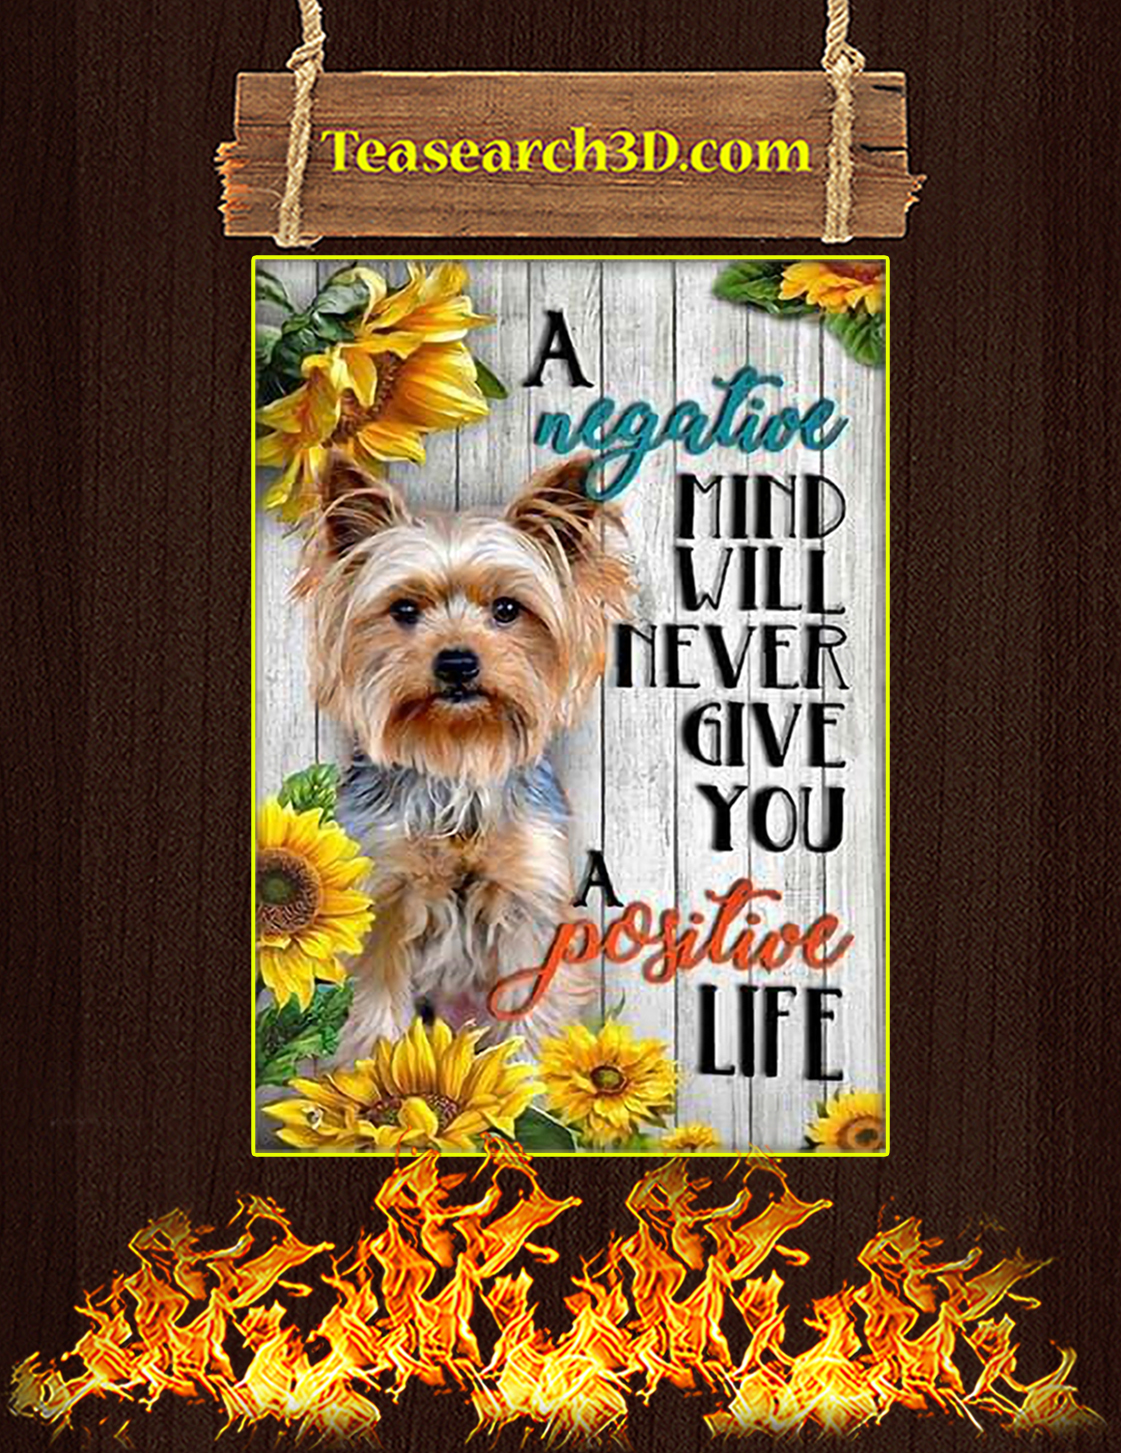 Yorkshire A negative mind will never give you a positive life poster A3